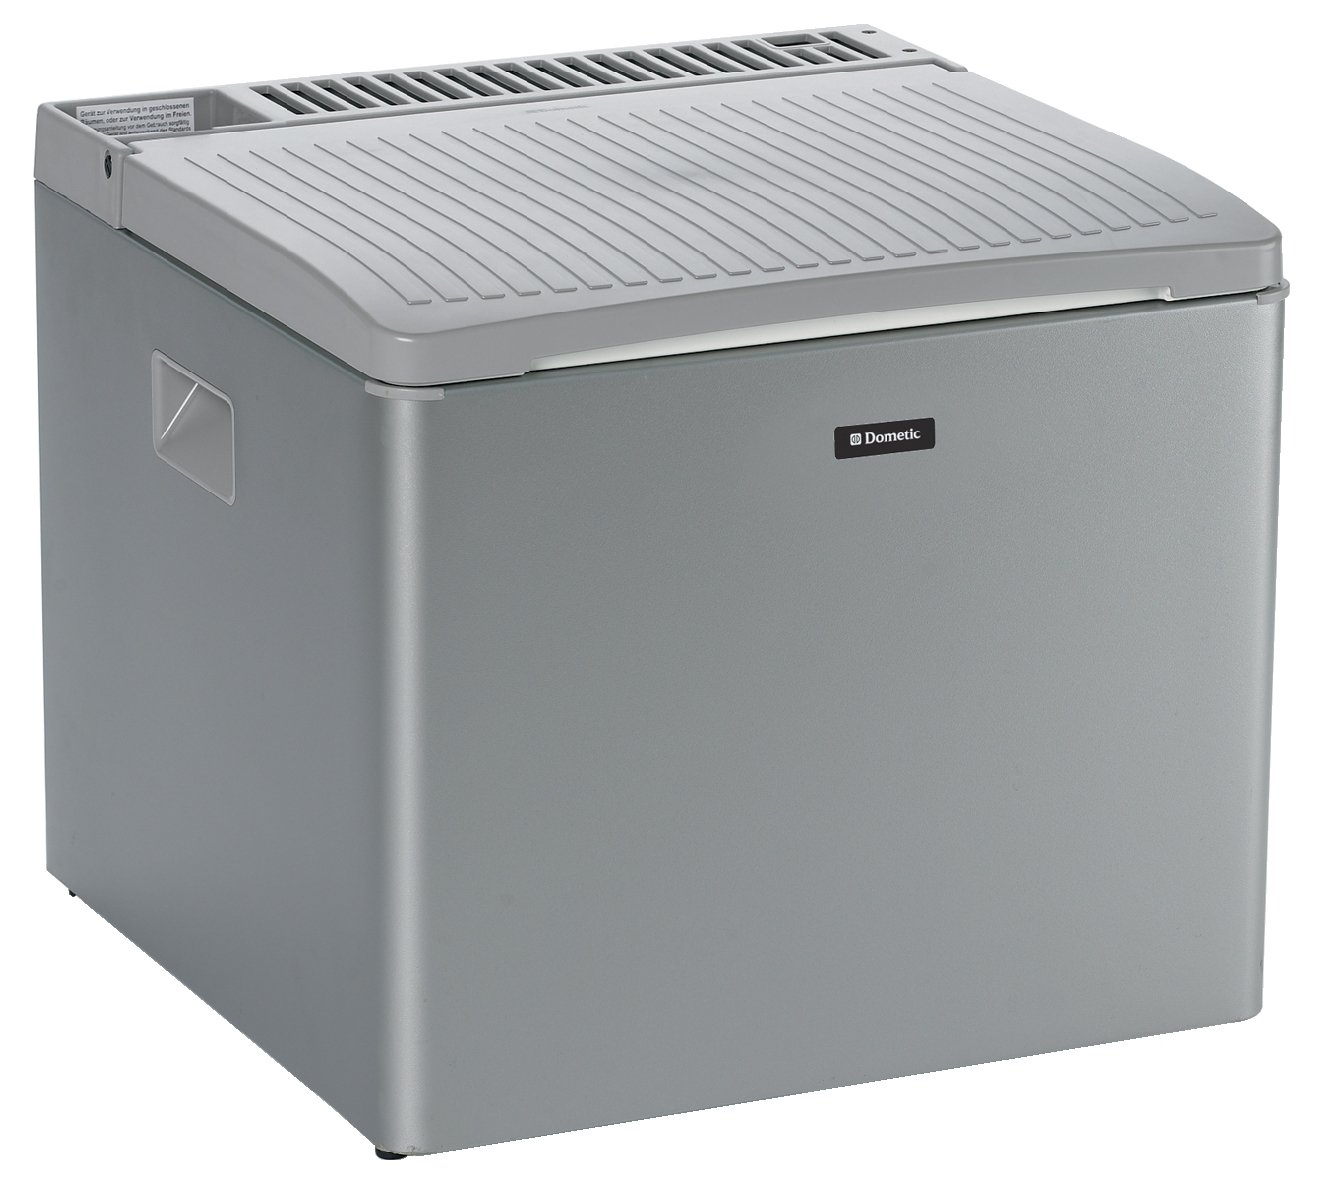 Dometic Gas Portable Cooler 2